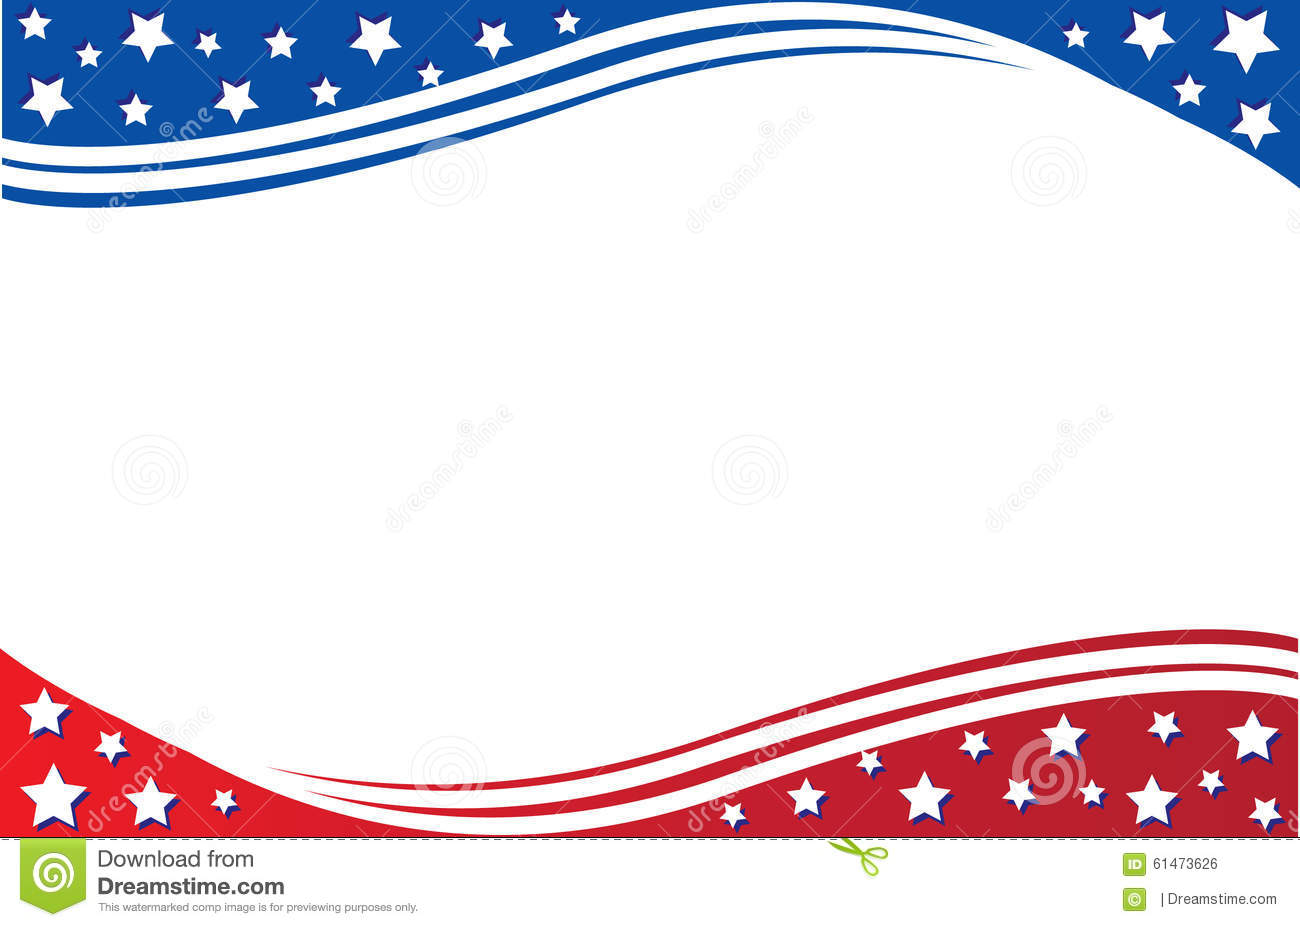 American Flag Postcard Template Stock Illustration - Image: 61473626